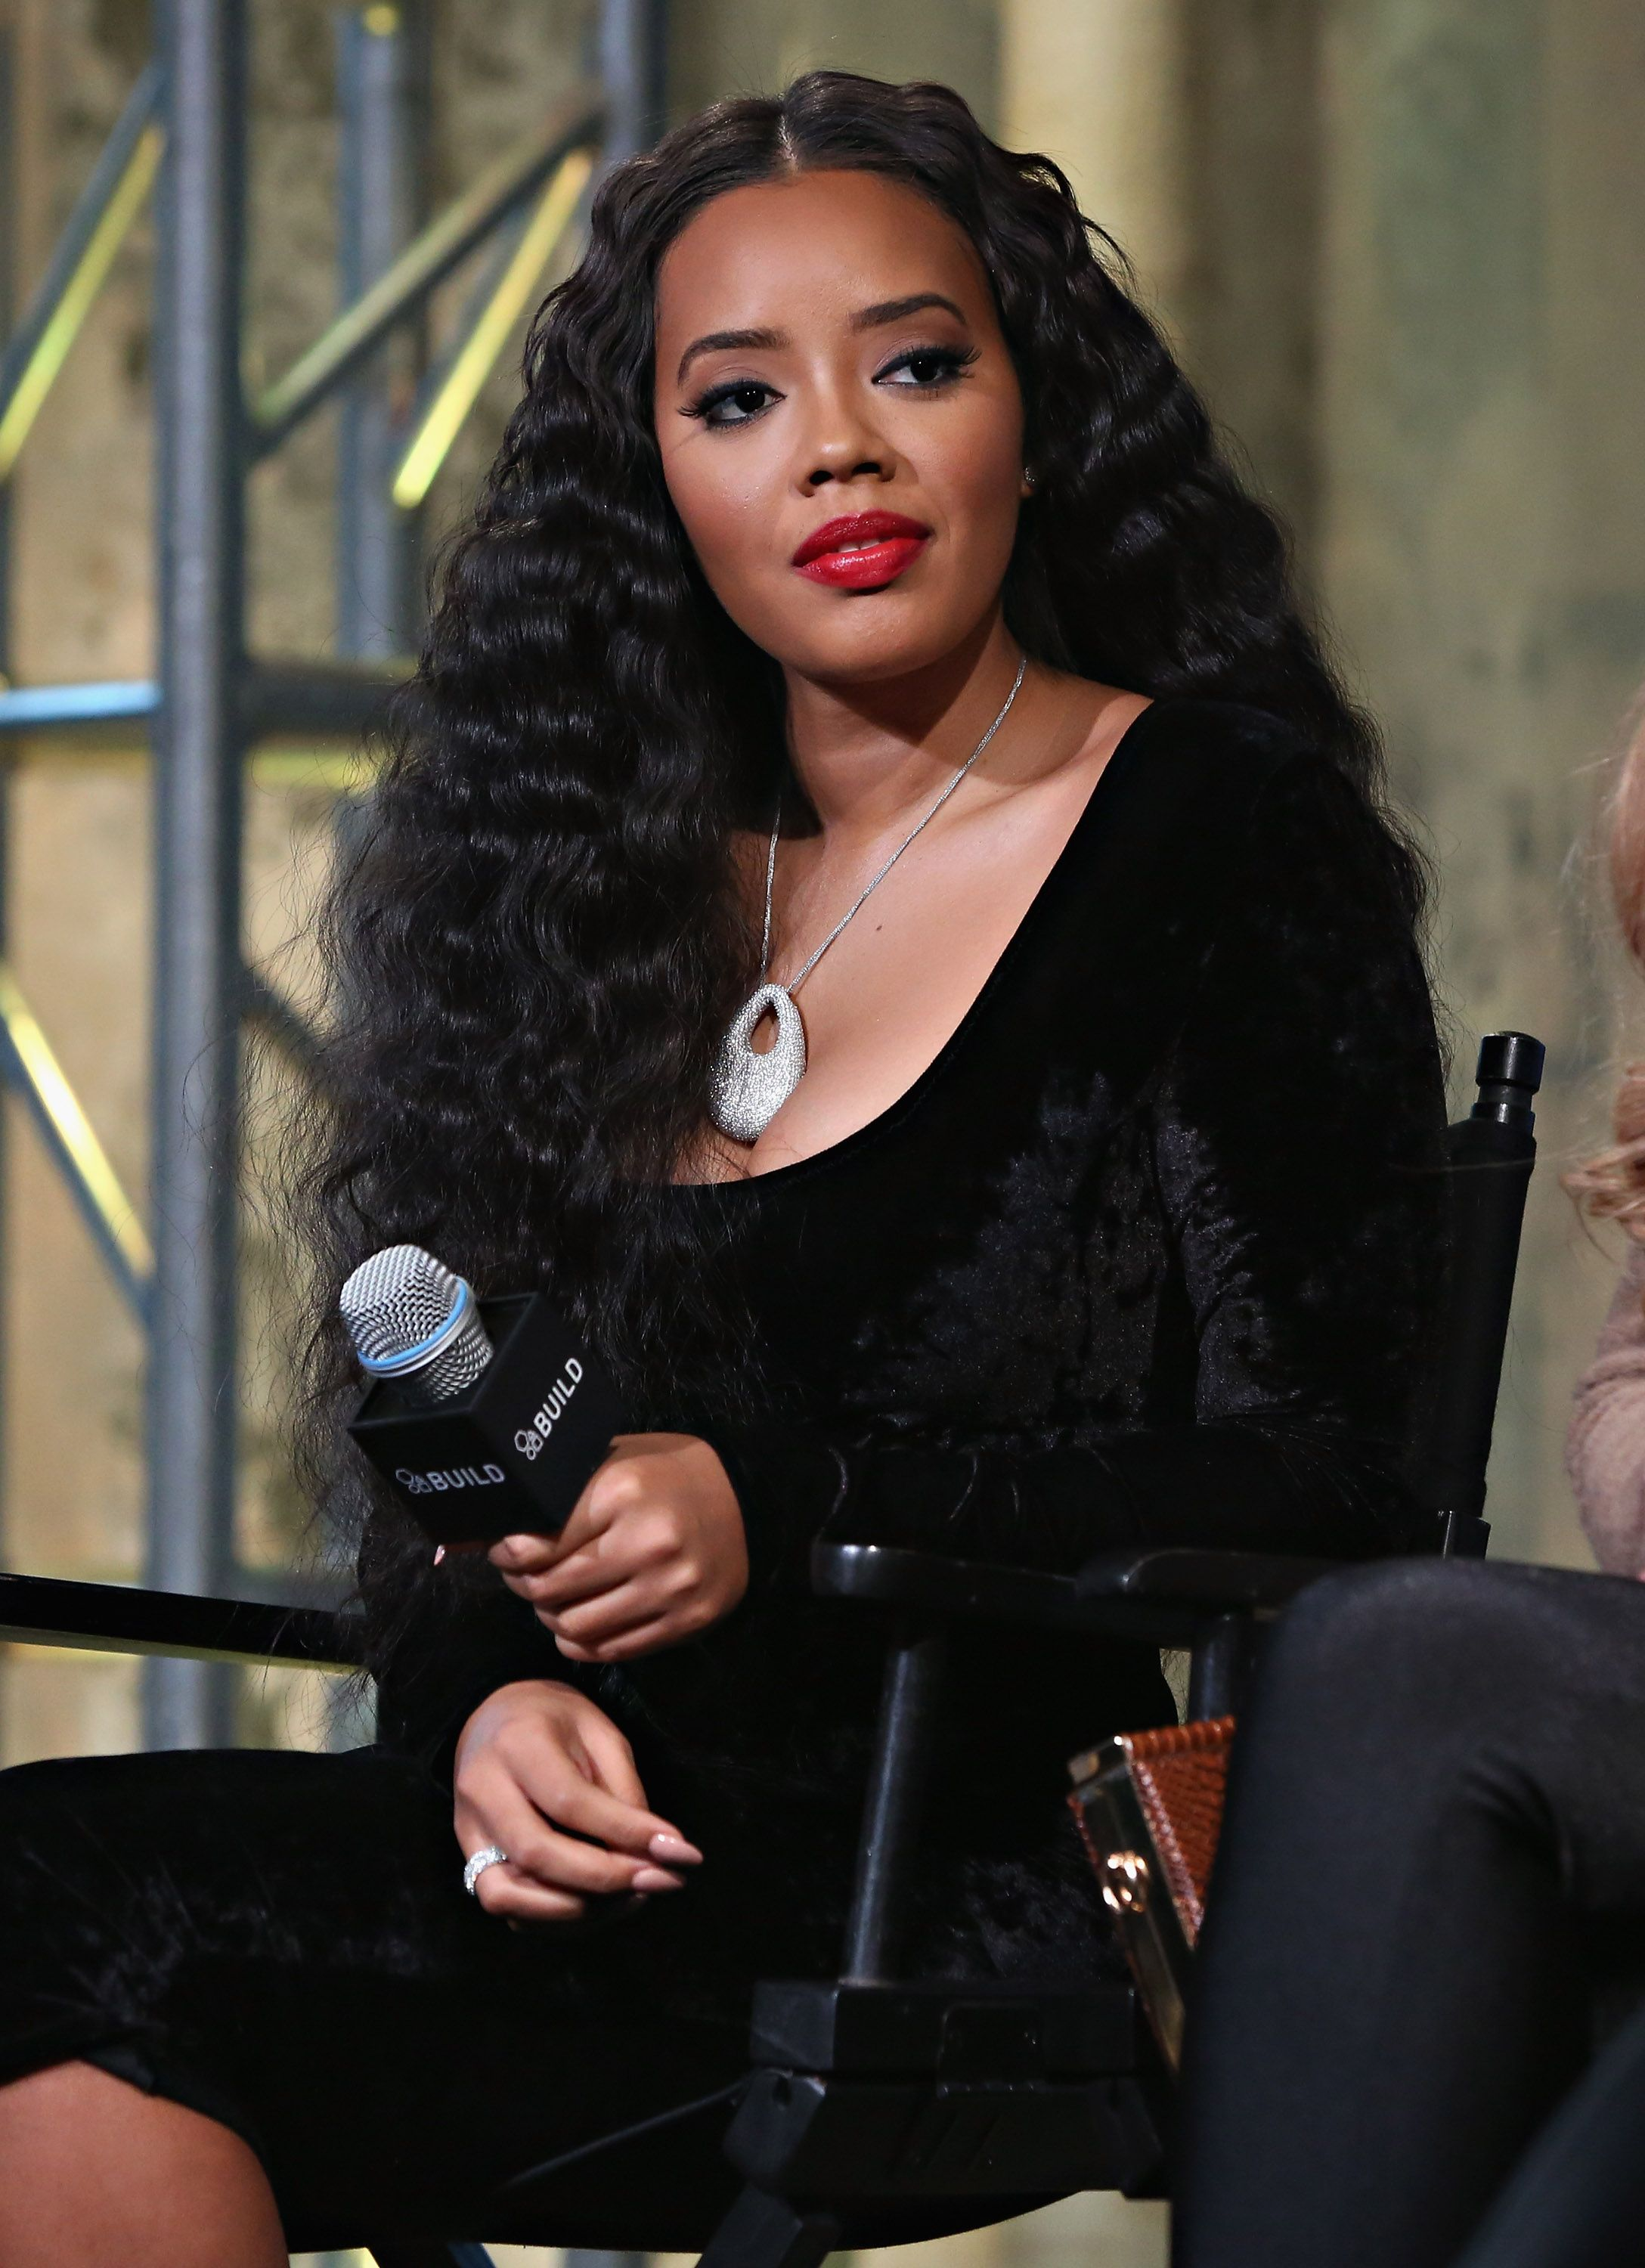 """Angela Simmons taking part in the AOL BUILD Series: """"Growing Up Hip Hop"""" at AOL Studios on January 7, 2016 in NY.   Photo: Getty Images"""